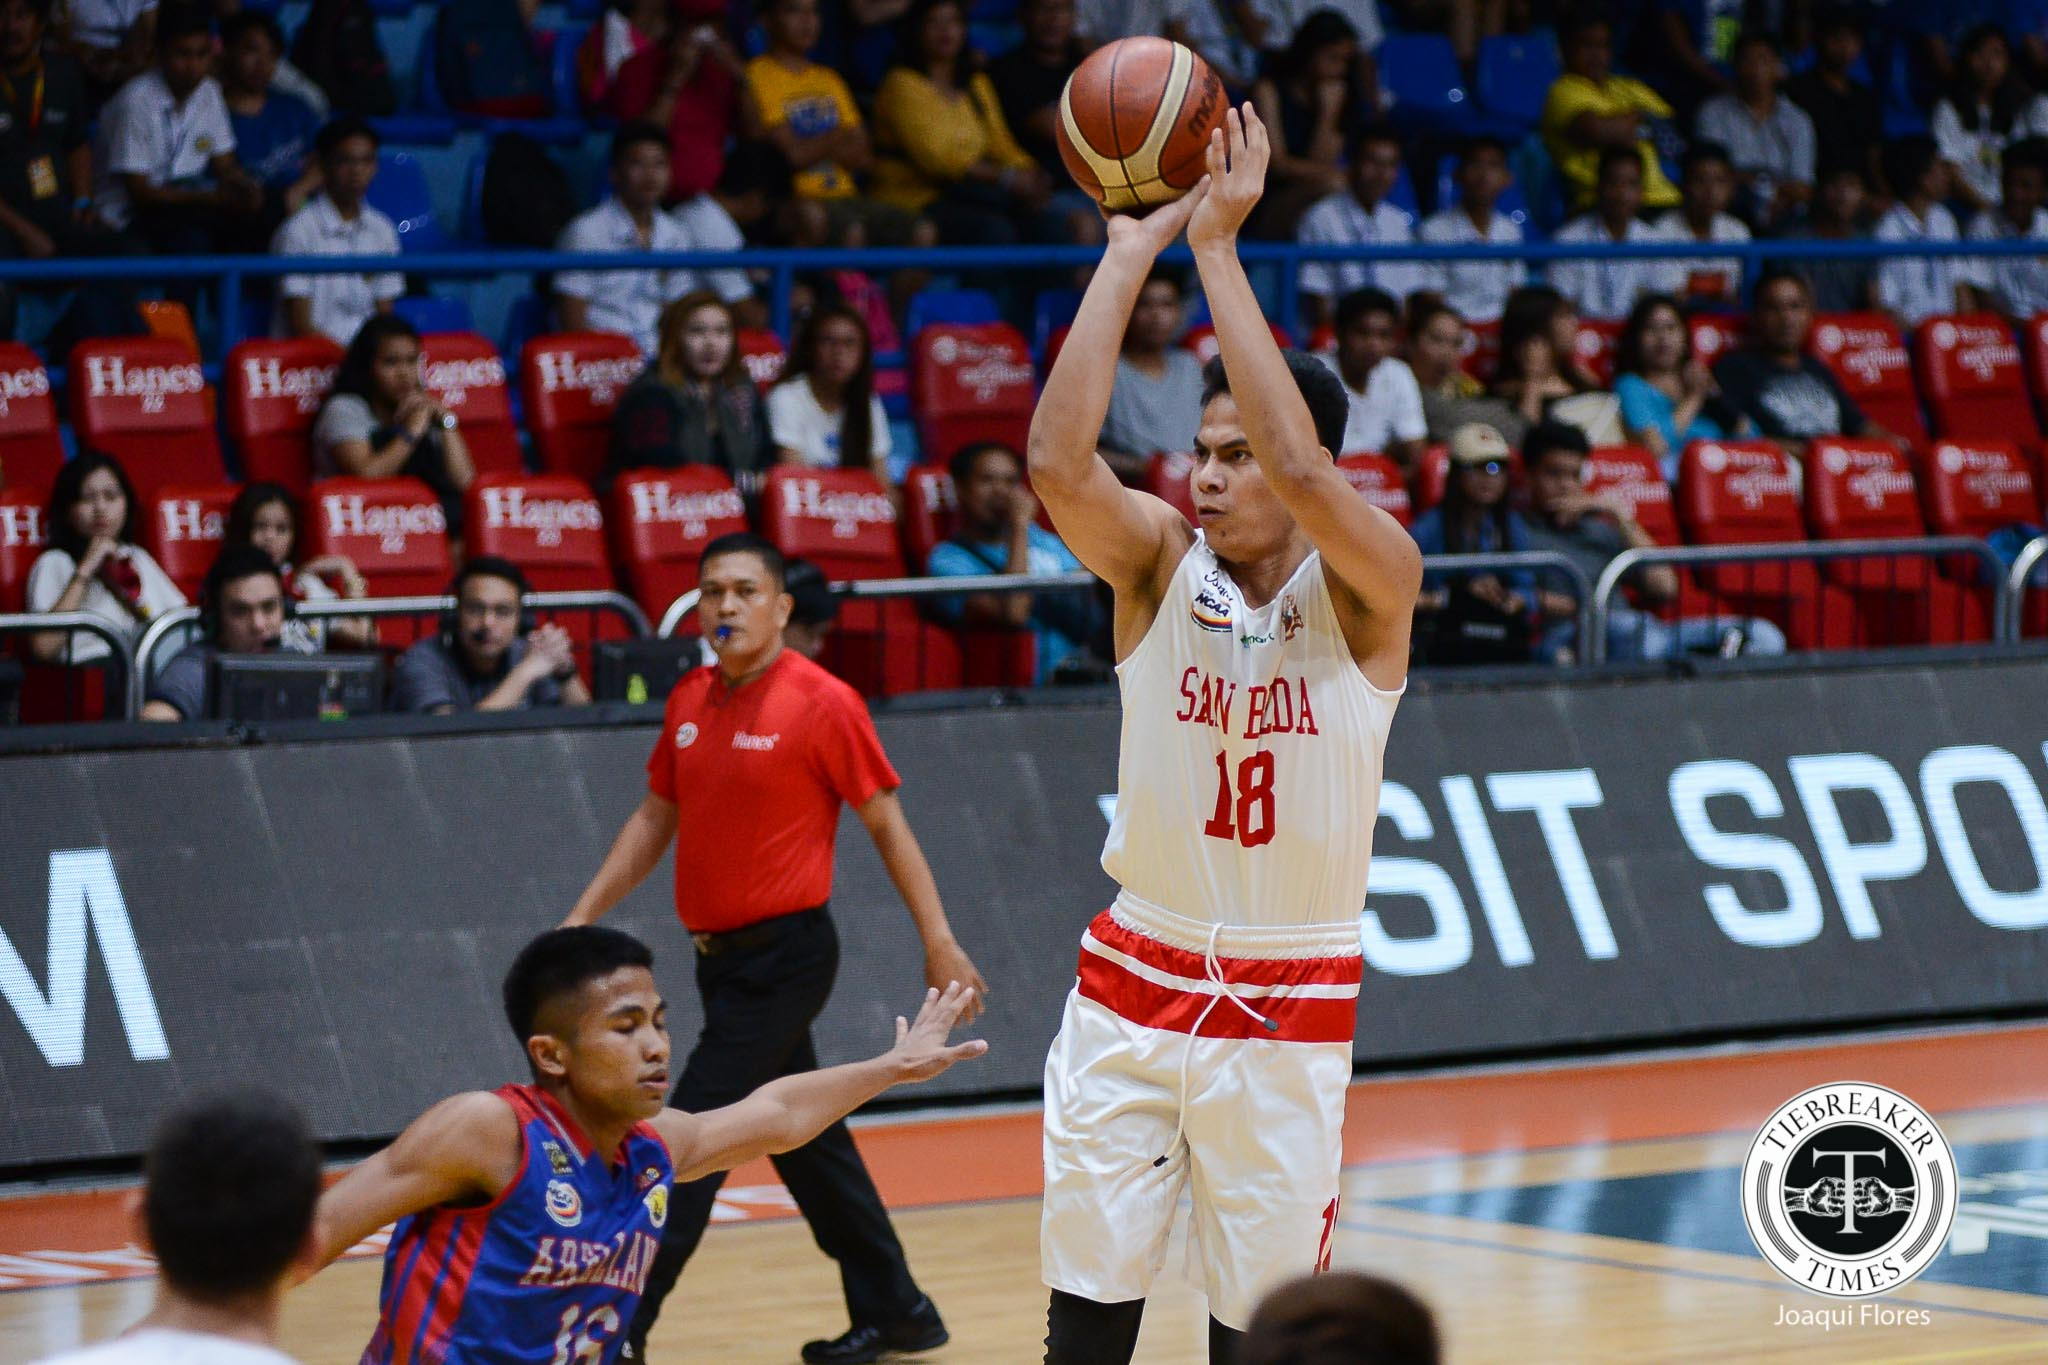 Philippine Sports News - Tiebreaker Times Ben Adamos leaves San Beda, looks to transfer to another NCAA school Basketball NCAA News SBC UPHSD  San Beda Seniors Basketball Perpetual Seniors Basketball NCAA Season 94 Seniors Basketball NCAA Season 94 Ben Adamos